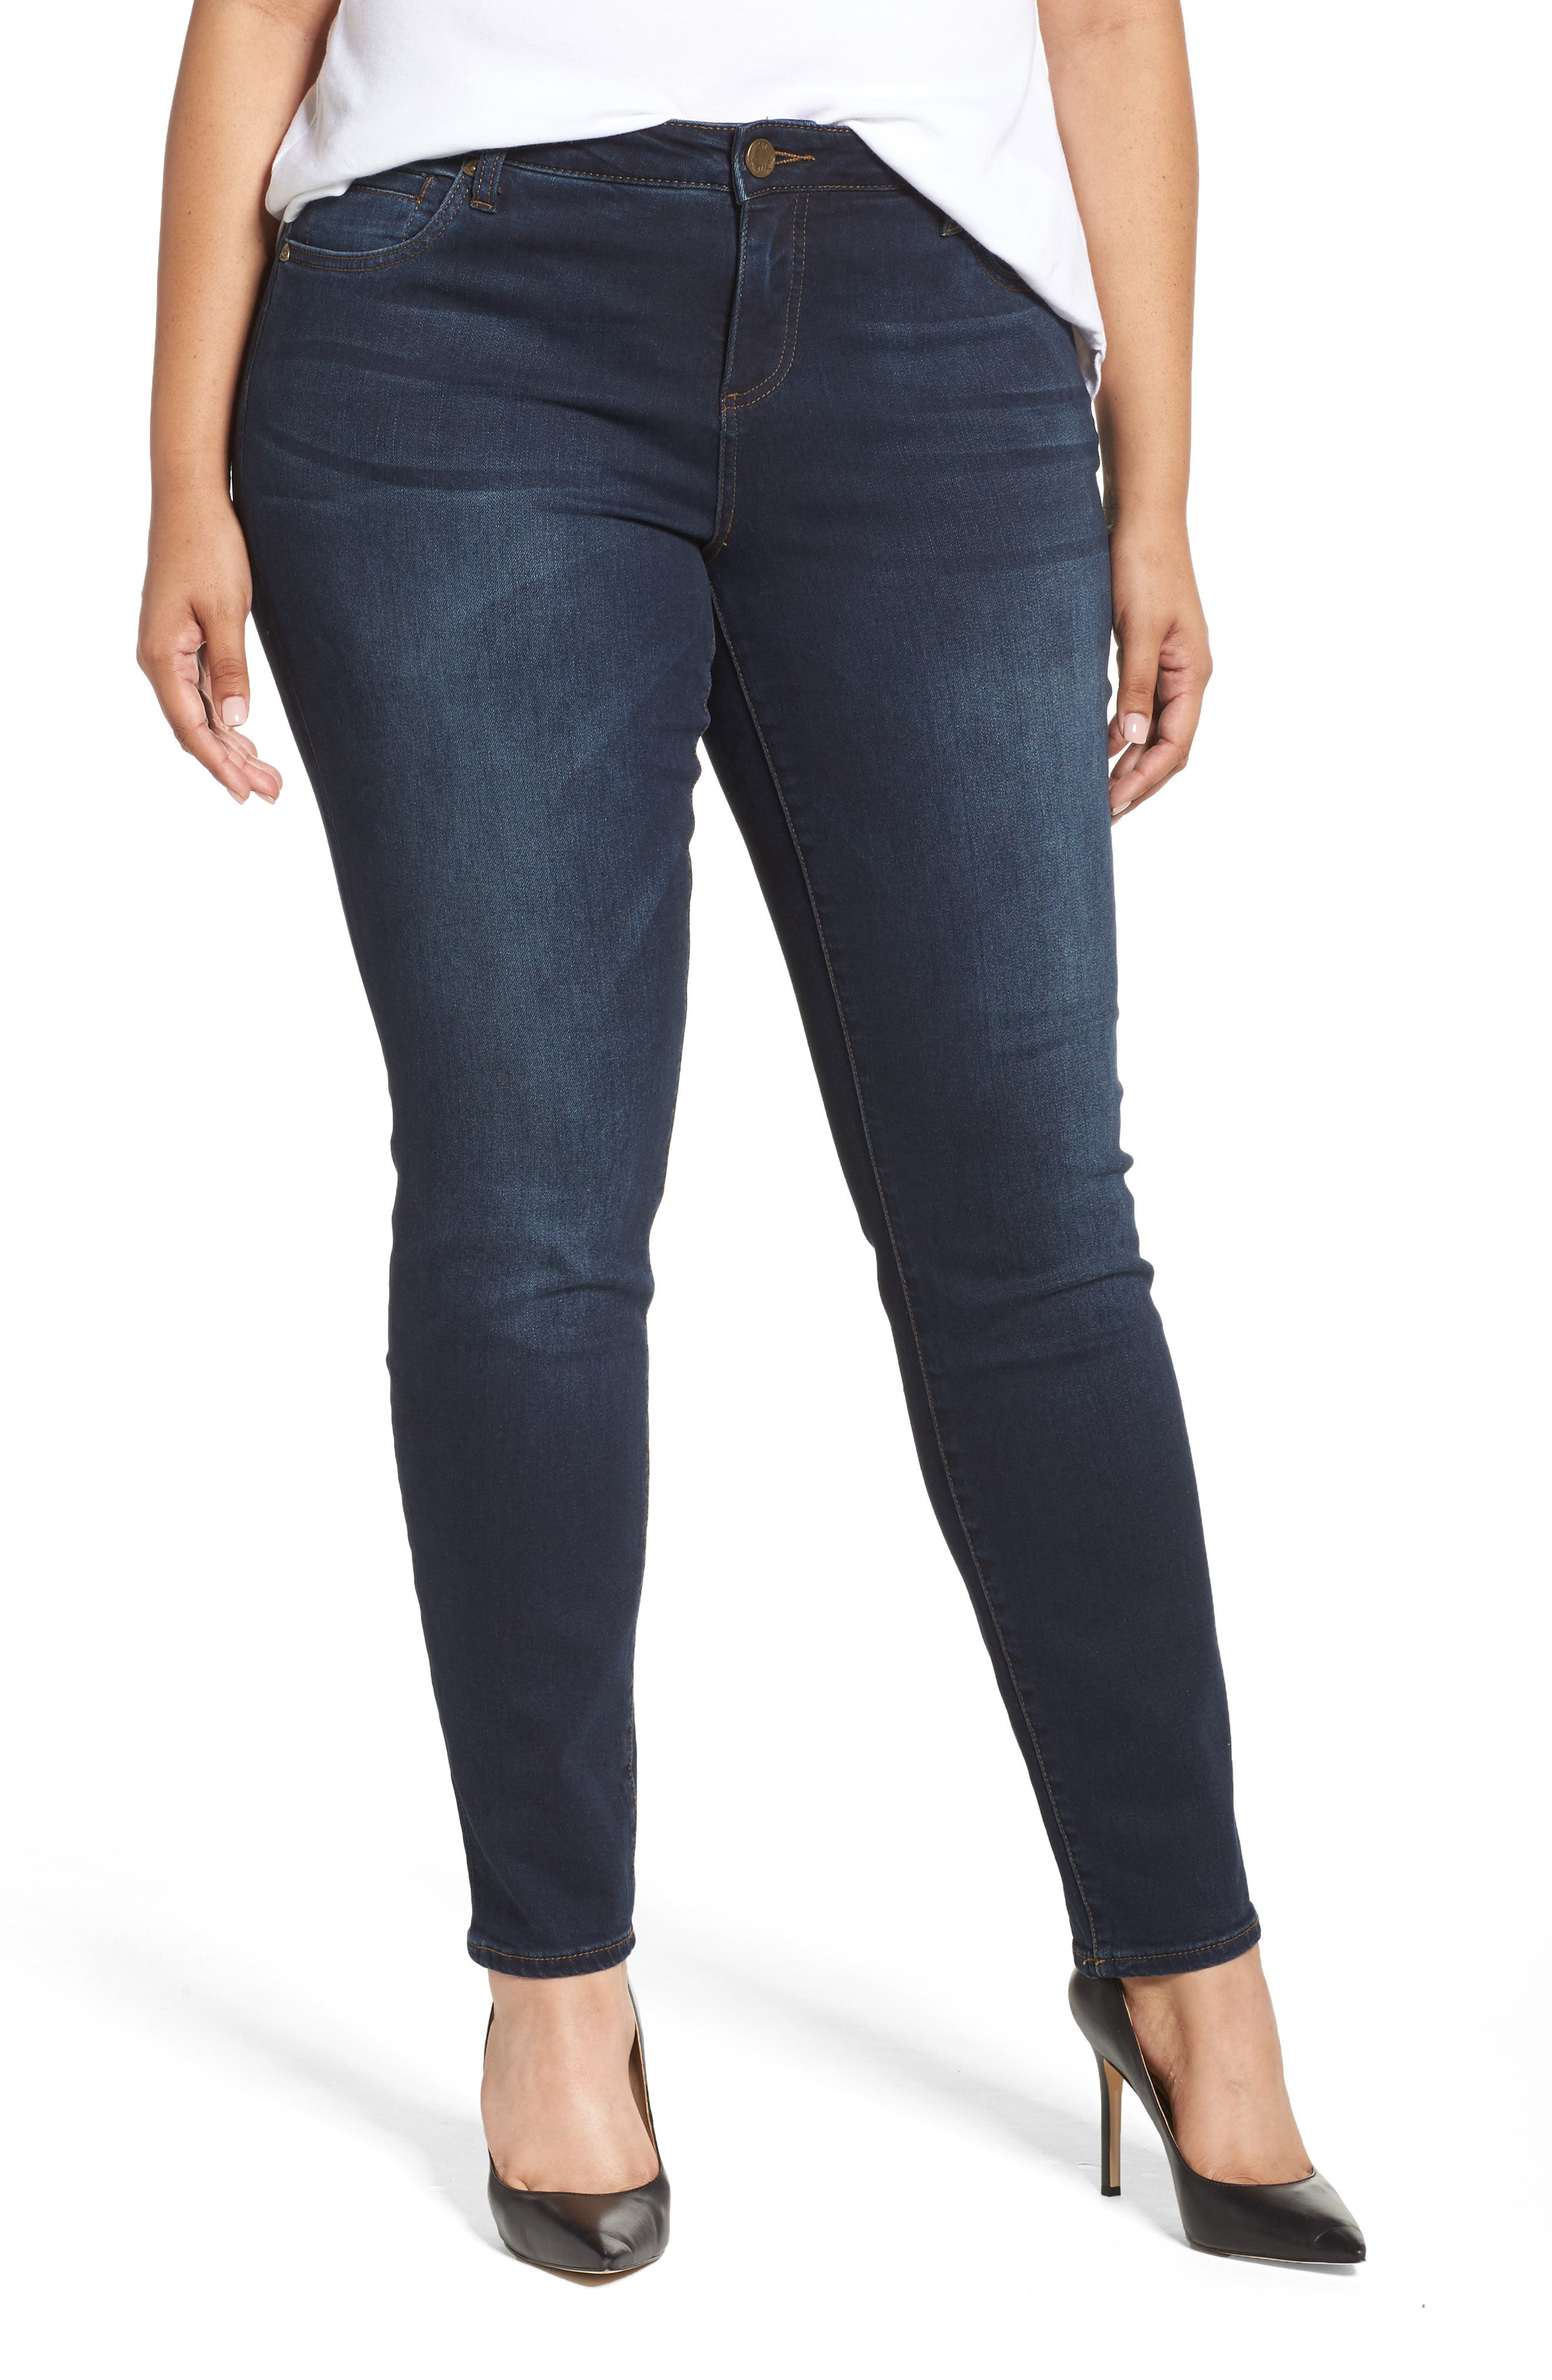 Plus Women's Kut From The Kloth Diana Skinny Jeans